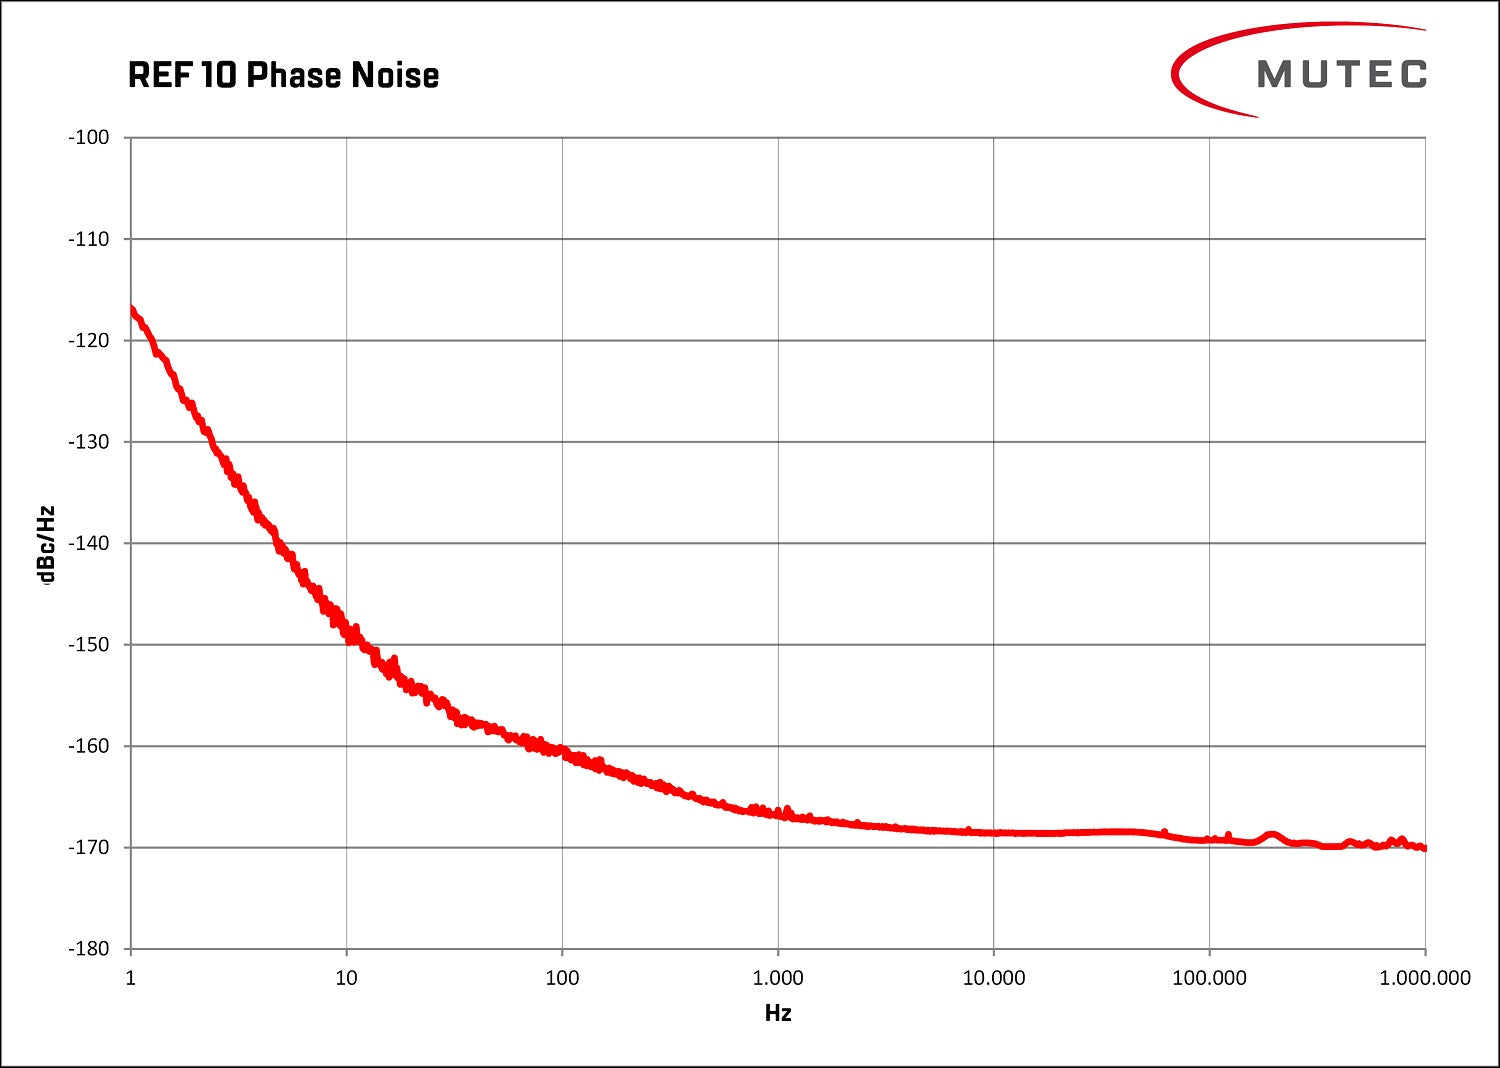 Phase noise, measured at REF 10's outputs